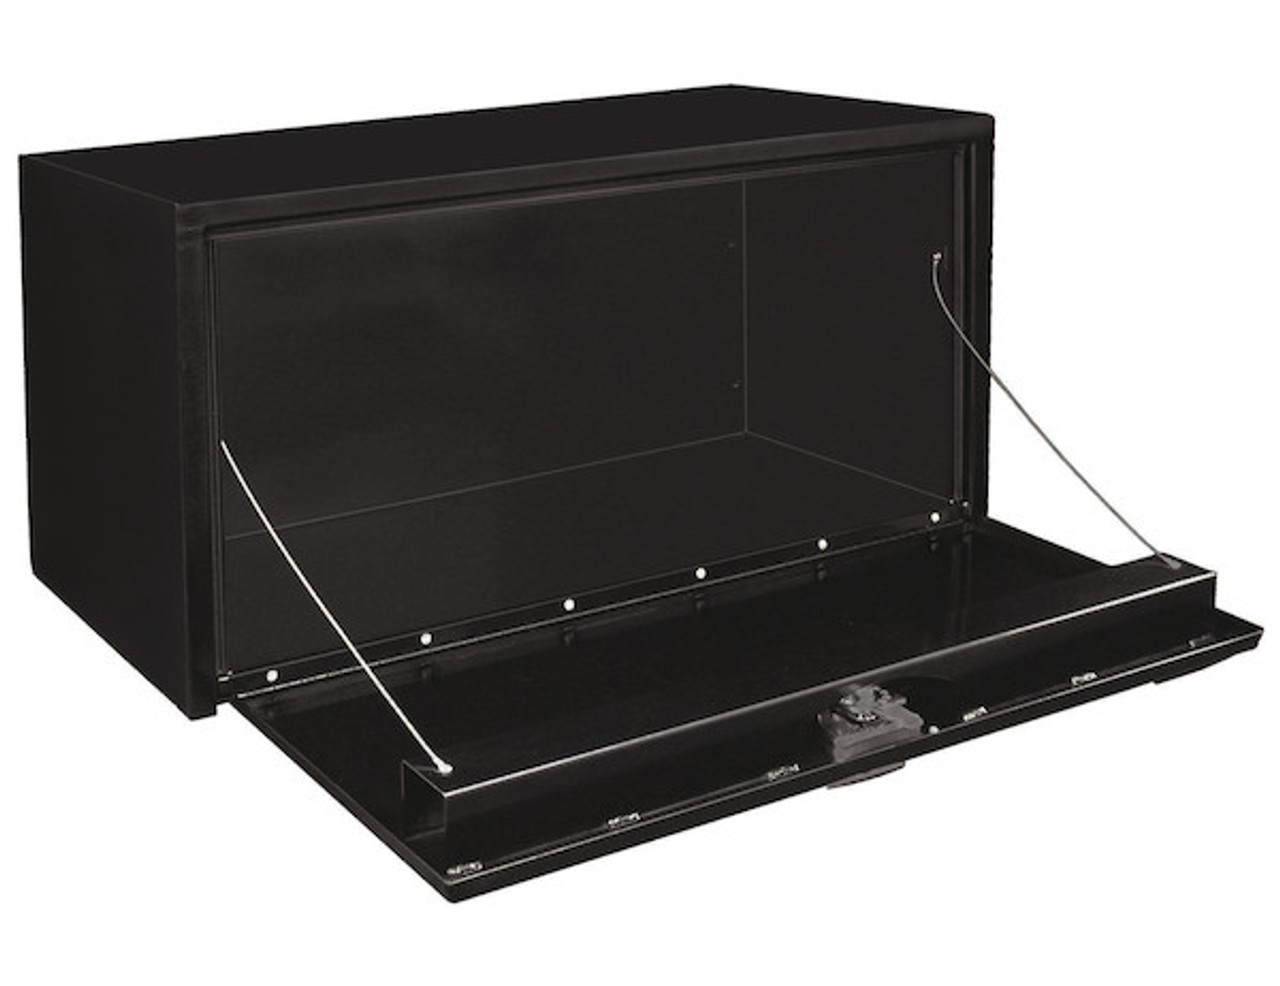 """1704305 BUYERS PRODUCTS BLACK STEEL UNDERBODY TRUCK TOOLBOX WITH T-LATCH 24""""HX24""""DX36""""W"""